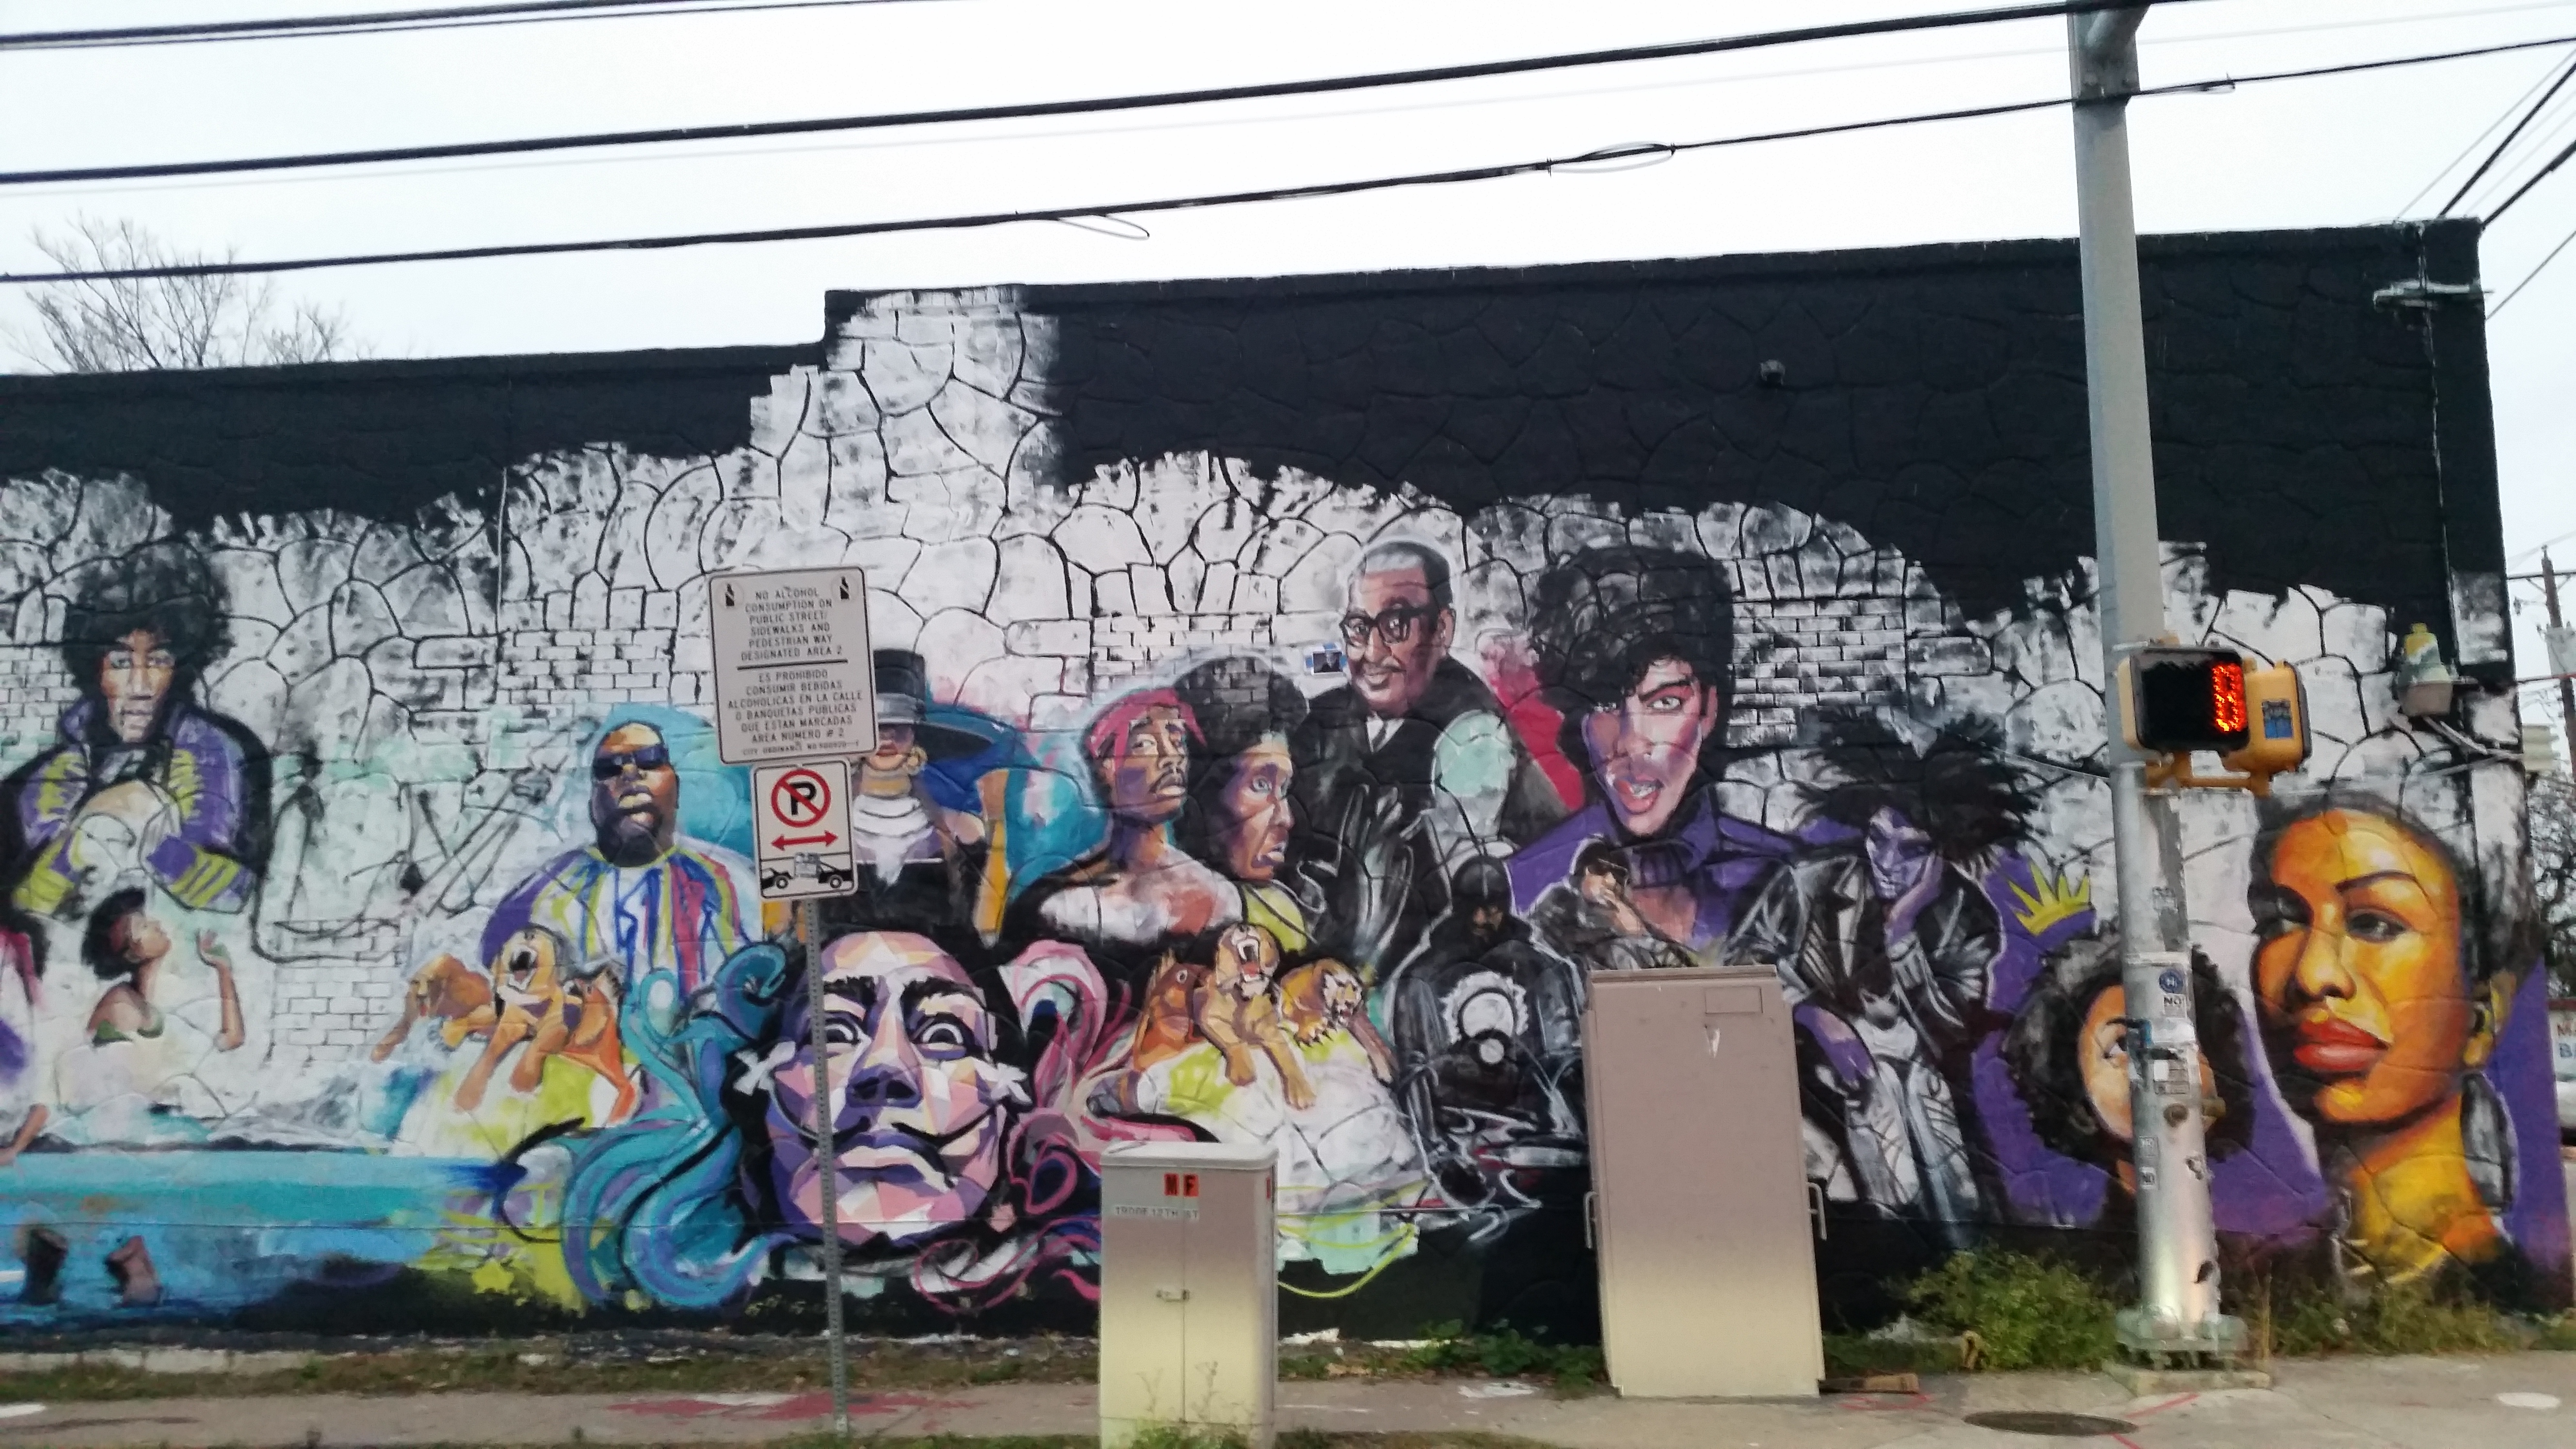 A mural at 12th and Chicon streets features prominent local and national musical and artistic icons (KXAN Photo/Calily Bien)